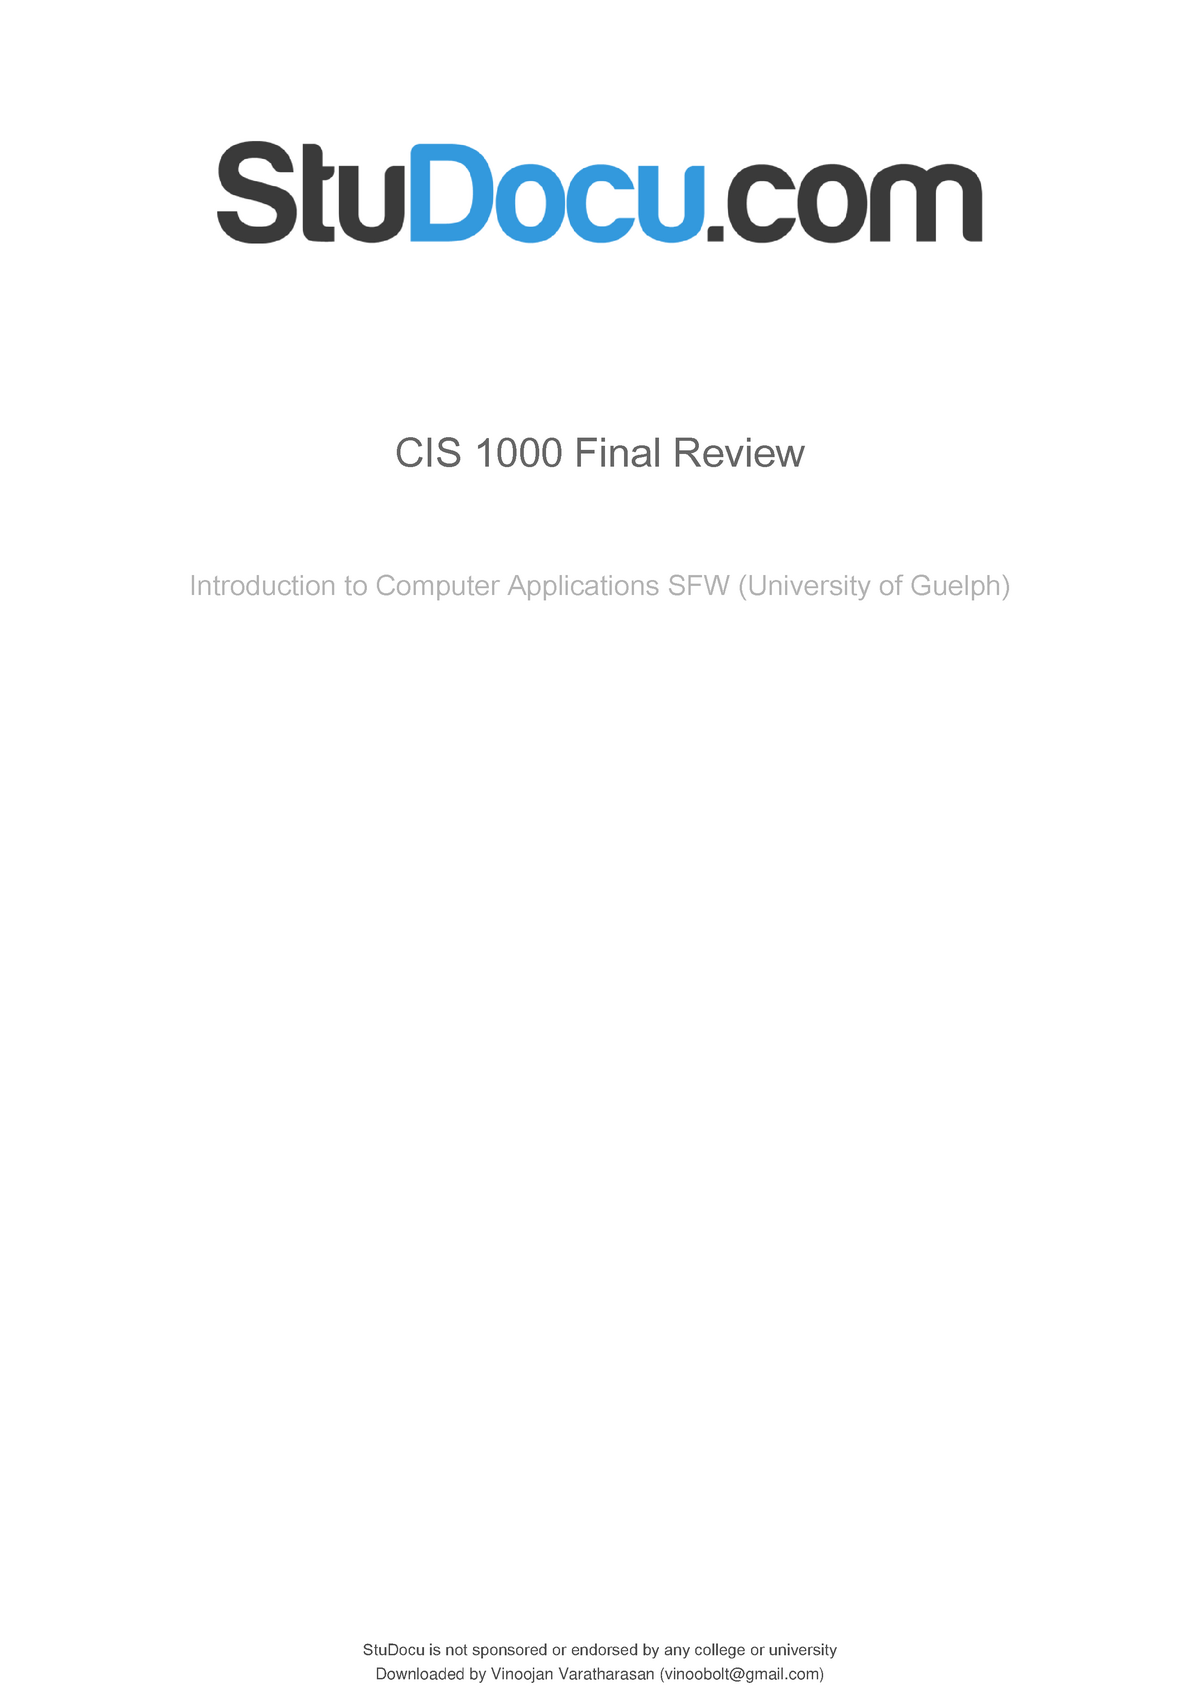 Cis 1000 final review - Cis1000 - StuDocu